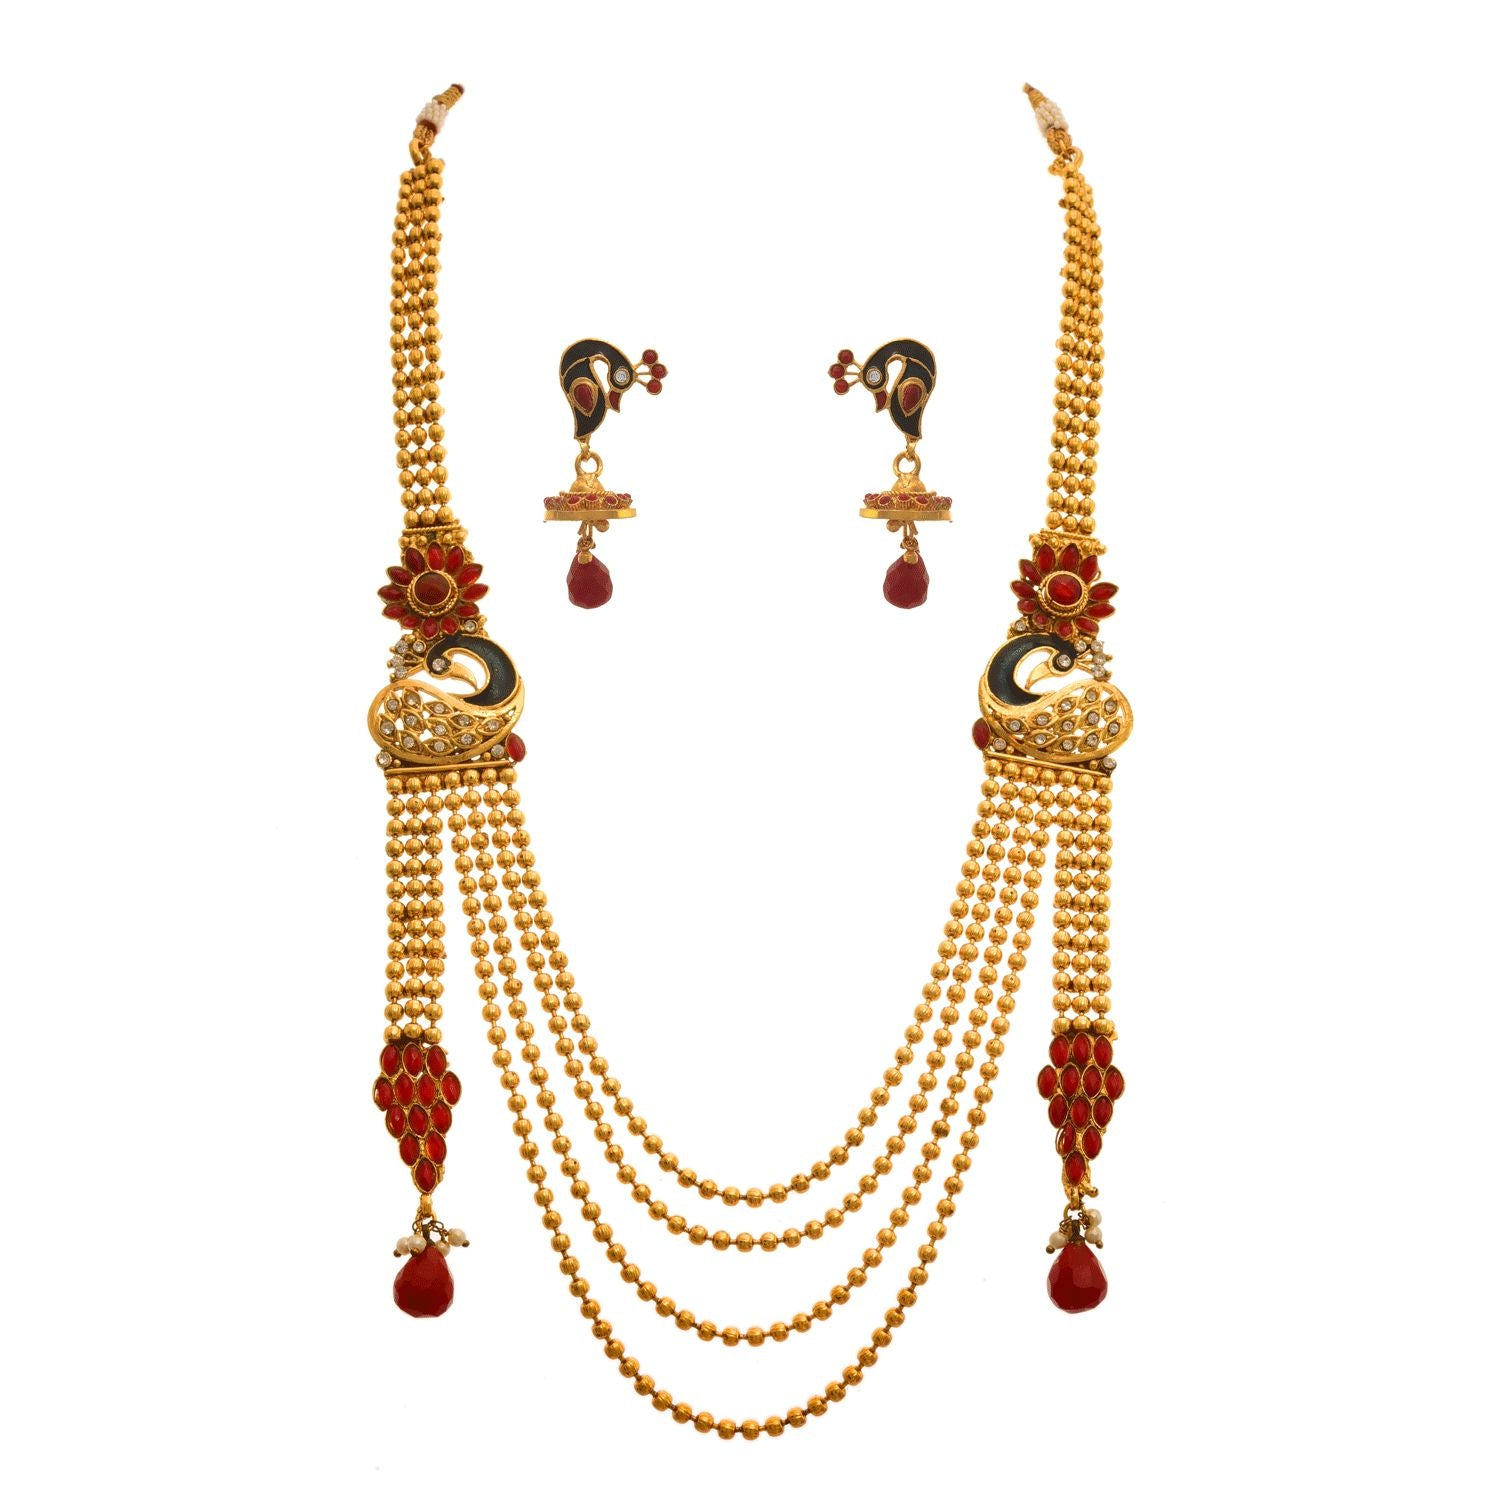 JFL - Traditional and Ethnic One Gram Gold Plated Stones Flower Designer Long Necklace Set with Earring for Women & Girls.